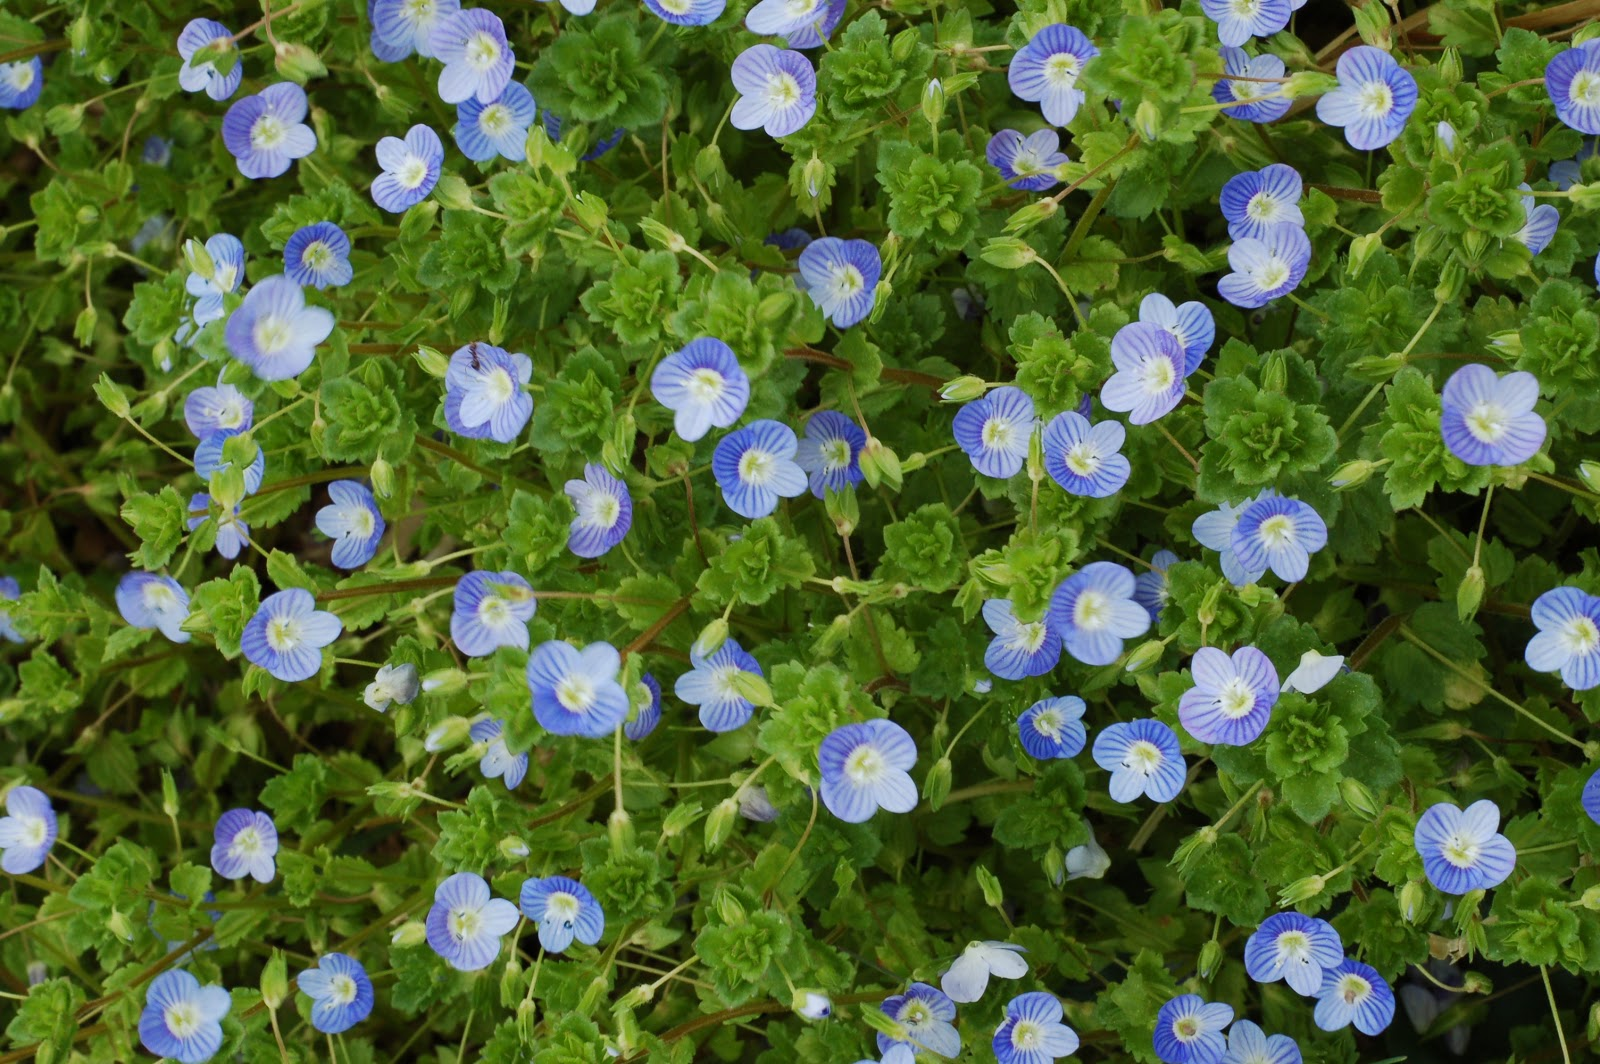 Boil And Steep 2 C Water 1 Handful Of Fresh Washed Sdwell Add Honey Or Other Herbs Es To Taste The Beautiful Tiny Blue Flowers